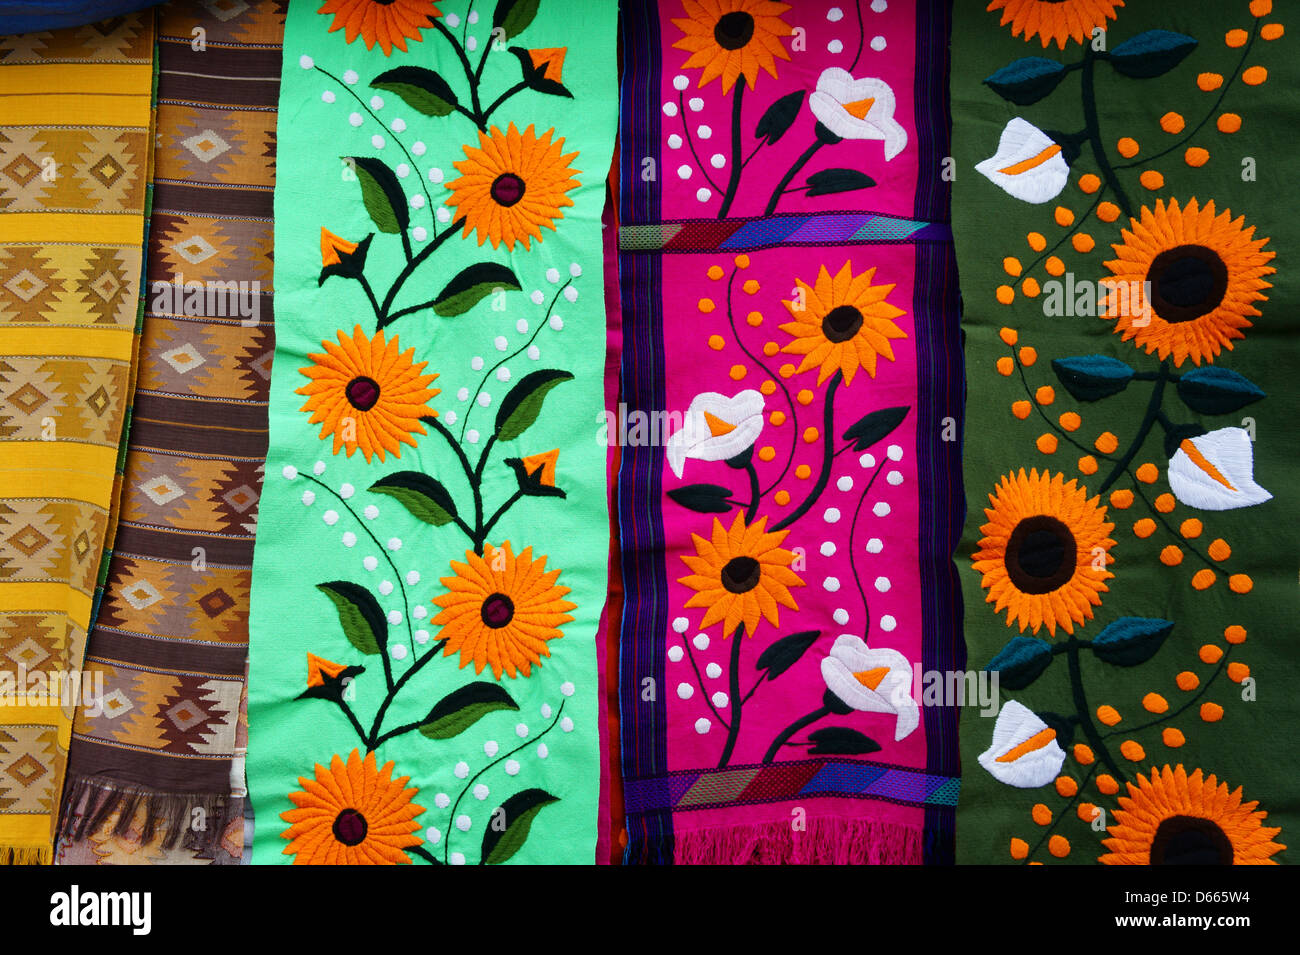 Colorful Table Runners In Mercado 28 Souvenirs And Handicrafts Market In  Cancun, Mexico